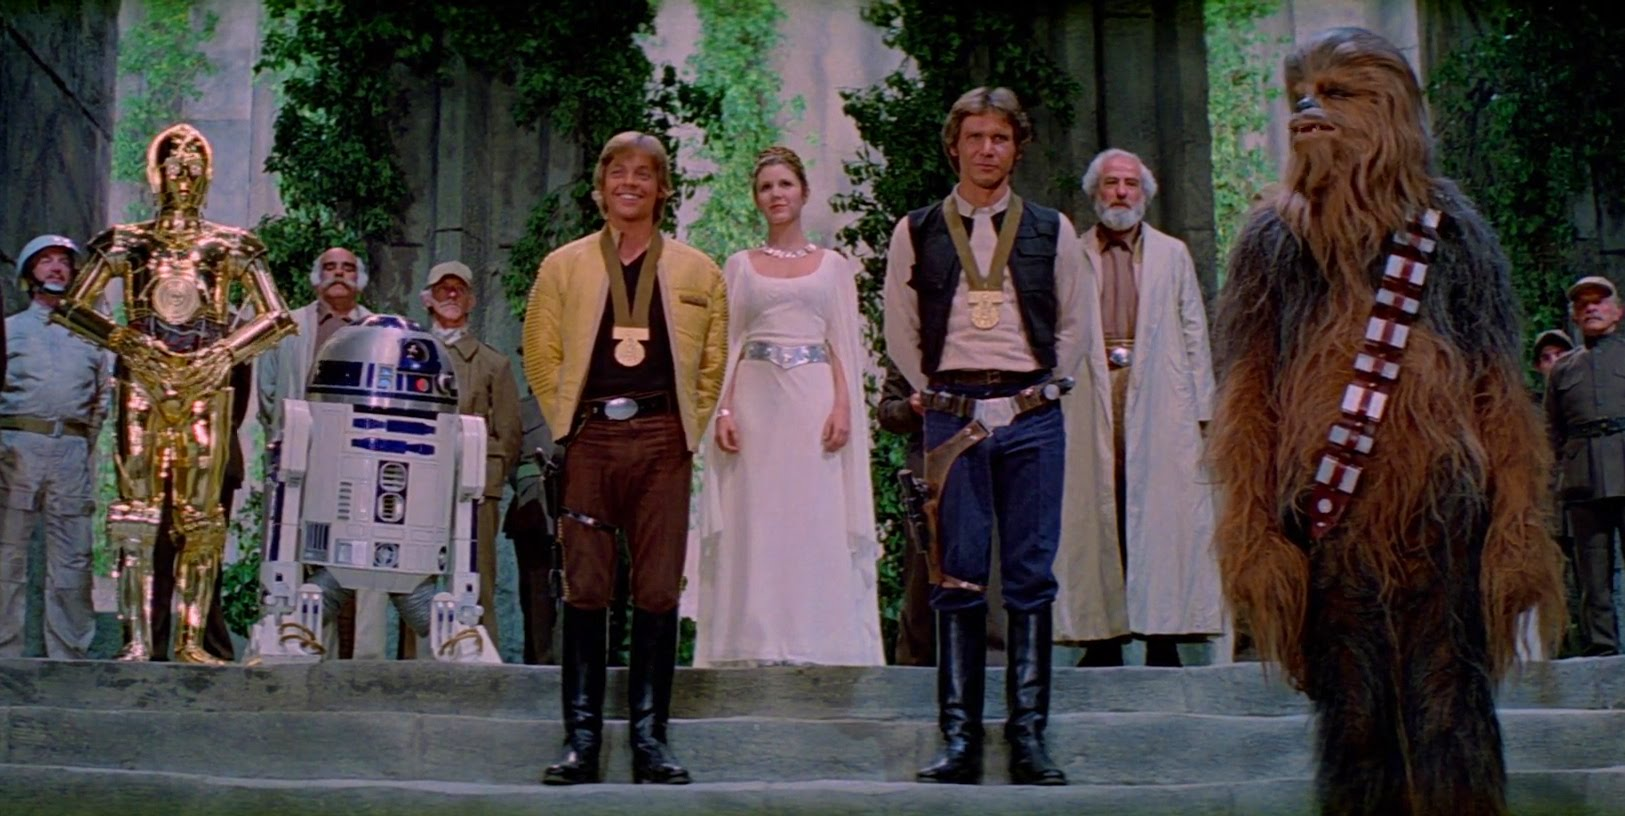 C3-PO, R2D2, Luke Skywalker, Princess Leia Organa, Han Solo & Chewbacca, the Wookie at the end of Star Wars IV A New Hope.